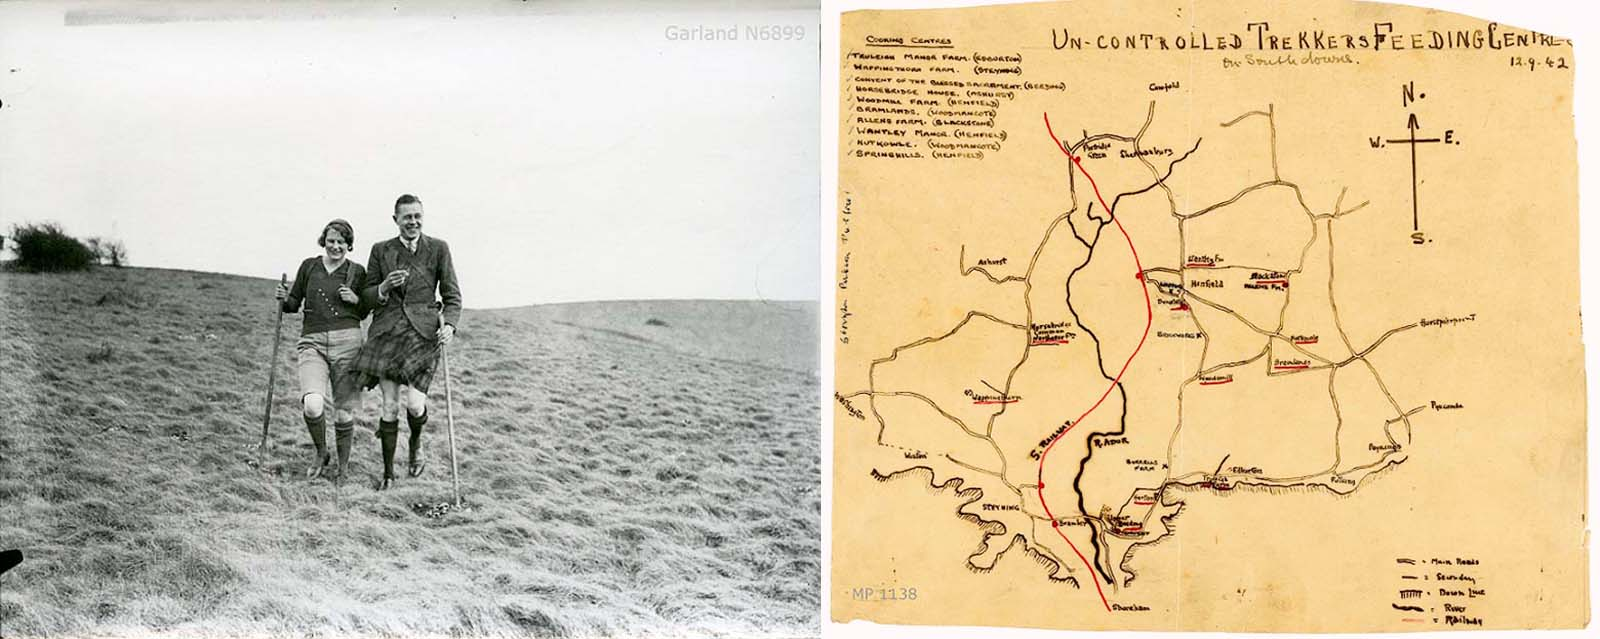 sie by side image of a couple trekking across a hill next to a hand drawn map